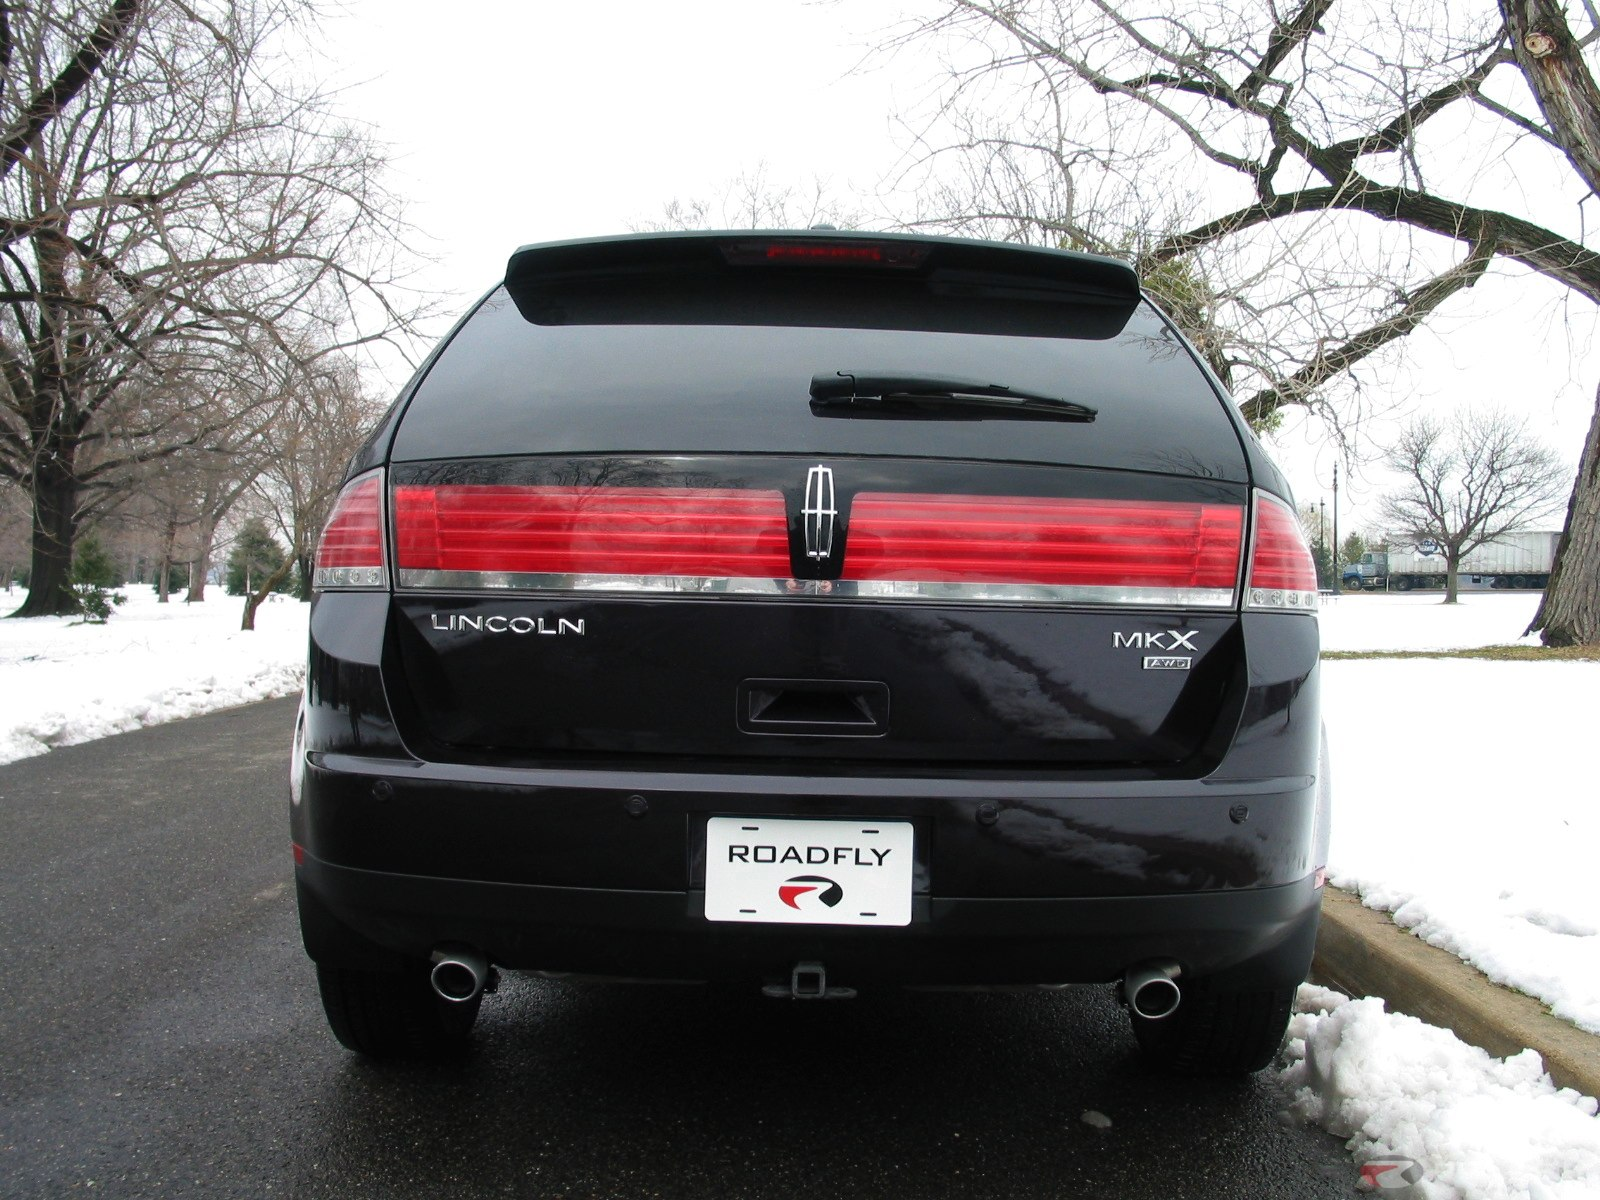 Lincoln MKX #12